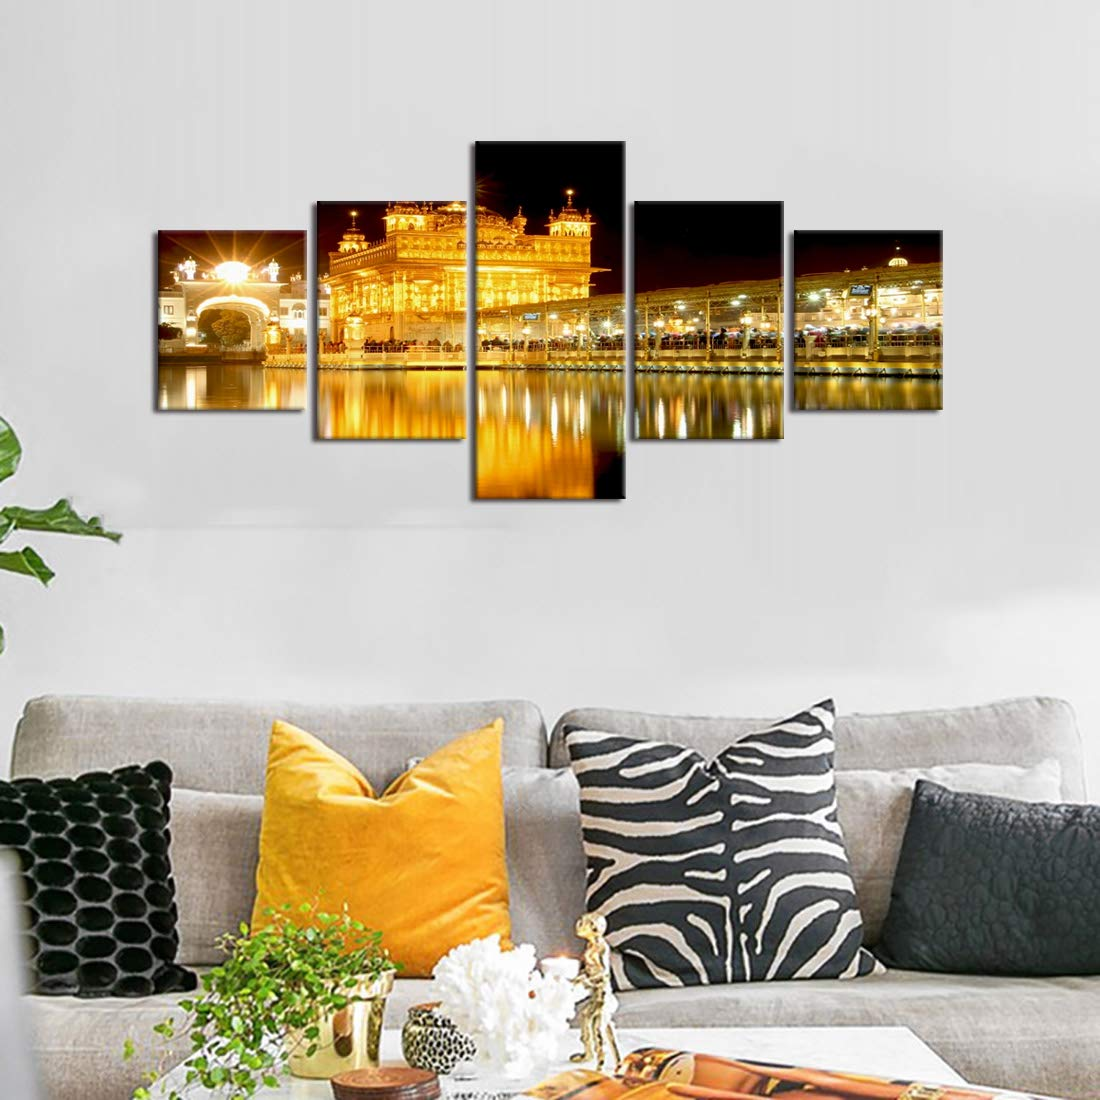 Amritsar golden temple canvas painting for living room large sikh canvas wall art pictures of the golden temple at amritsar modern office home wall